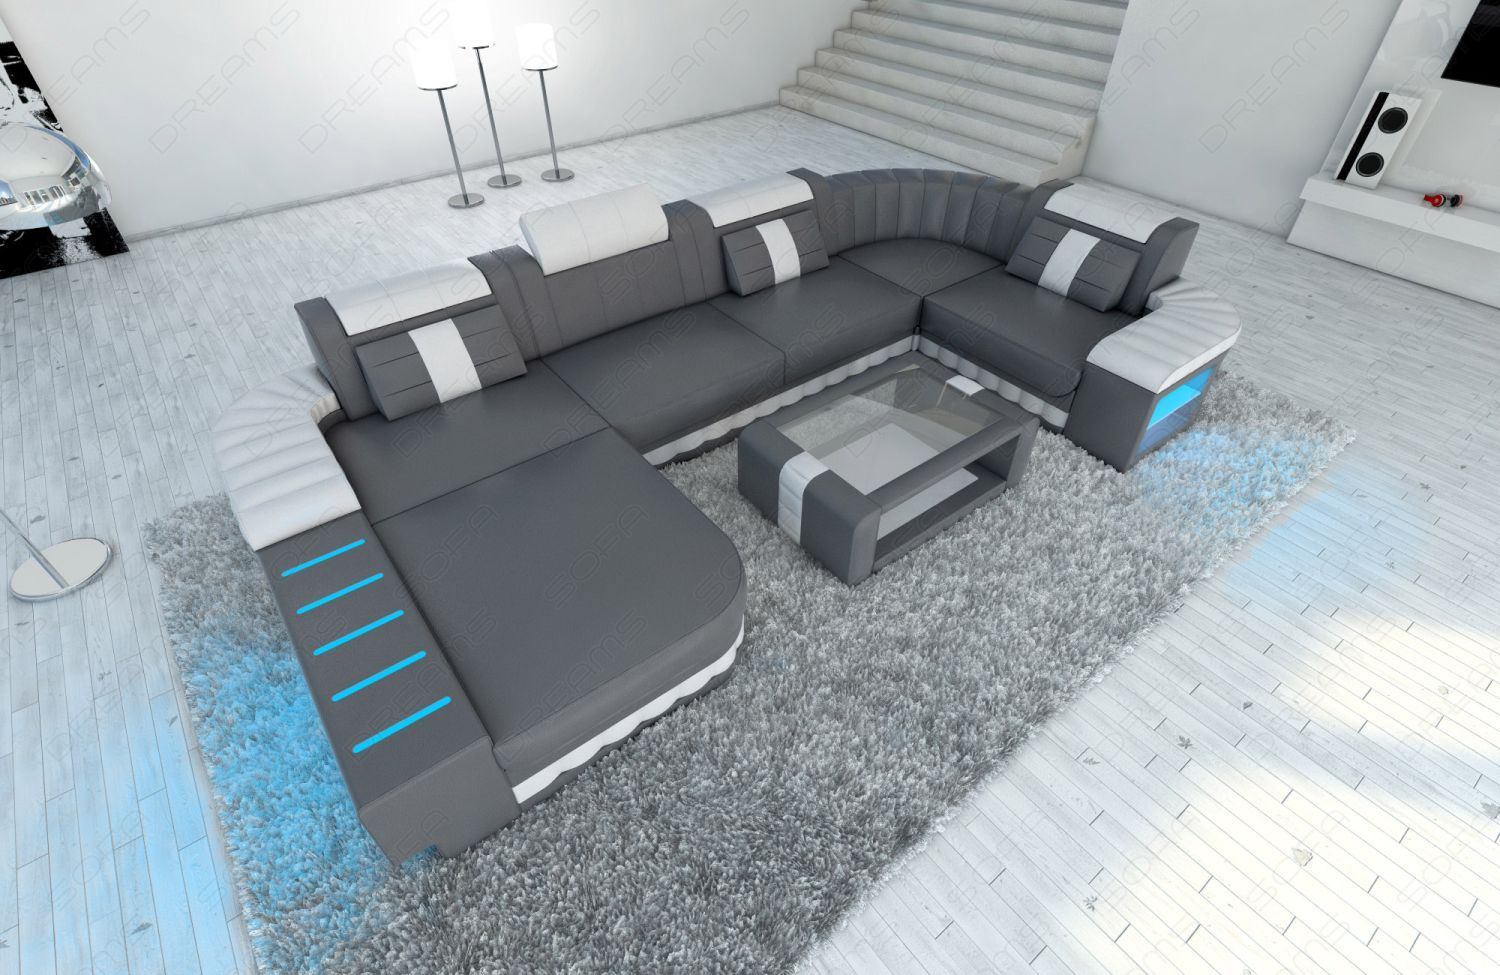 design sectional sofa bellagio led u shape grey white ebay. Black Bedroom Furniture Sets. Home Design Ideas